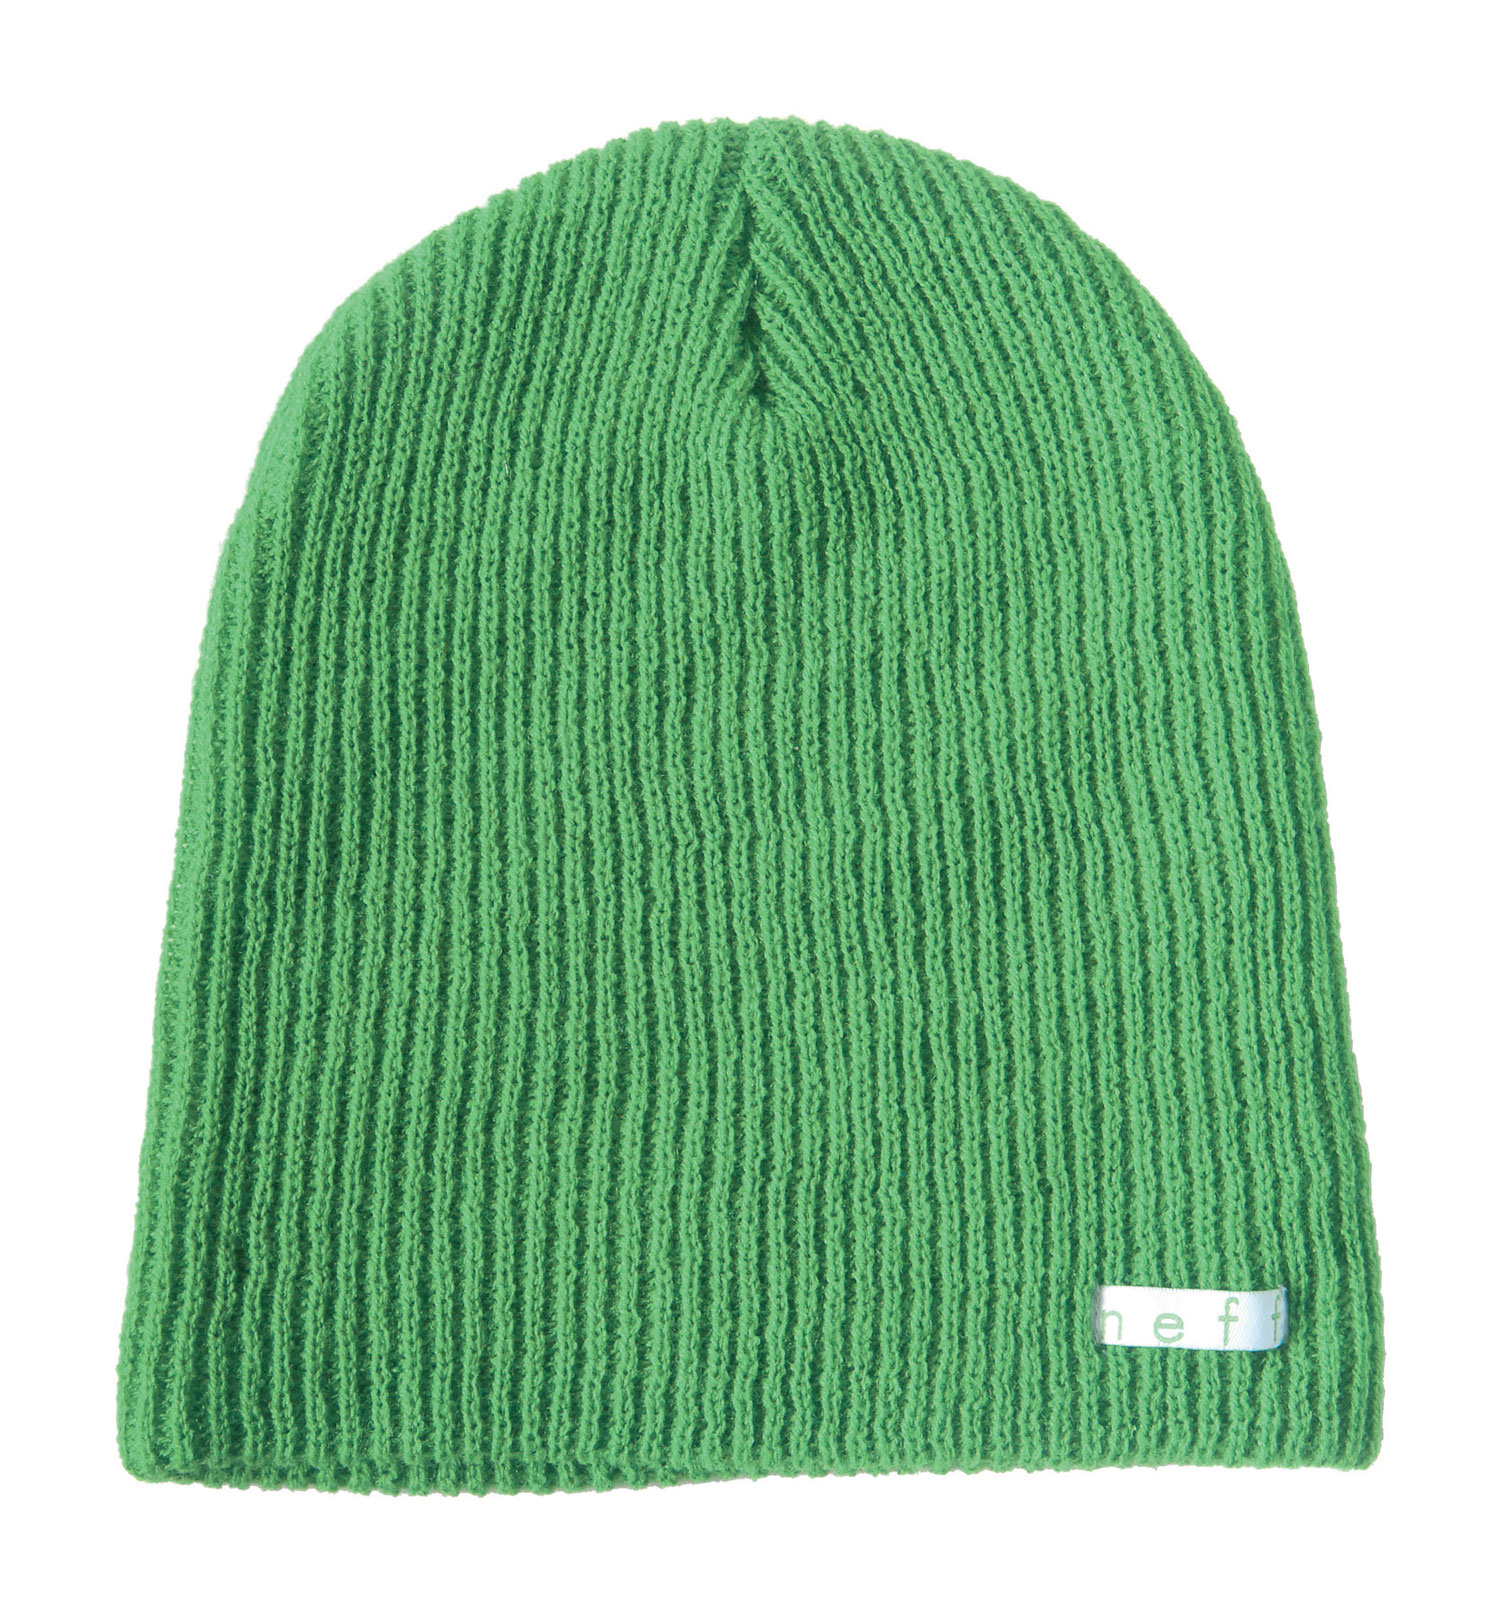 Skateboard The classic beanie that started it all. This extra soft and light-weight beanie features a slightly ribbed knit texture, a slouchy fit, and iconic Neff logo. The Daily beanie looks great on guys and girls and is the perfect beanie to wear well, daily! Key Features of the Neff Daily Beanie: 100% Acrylic - $10.95